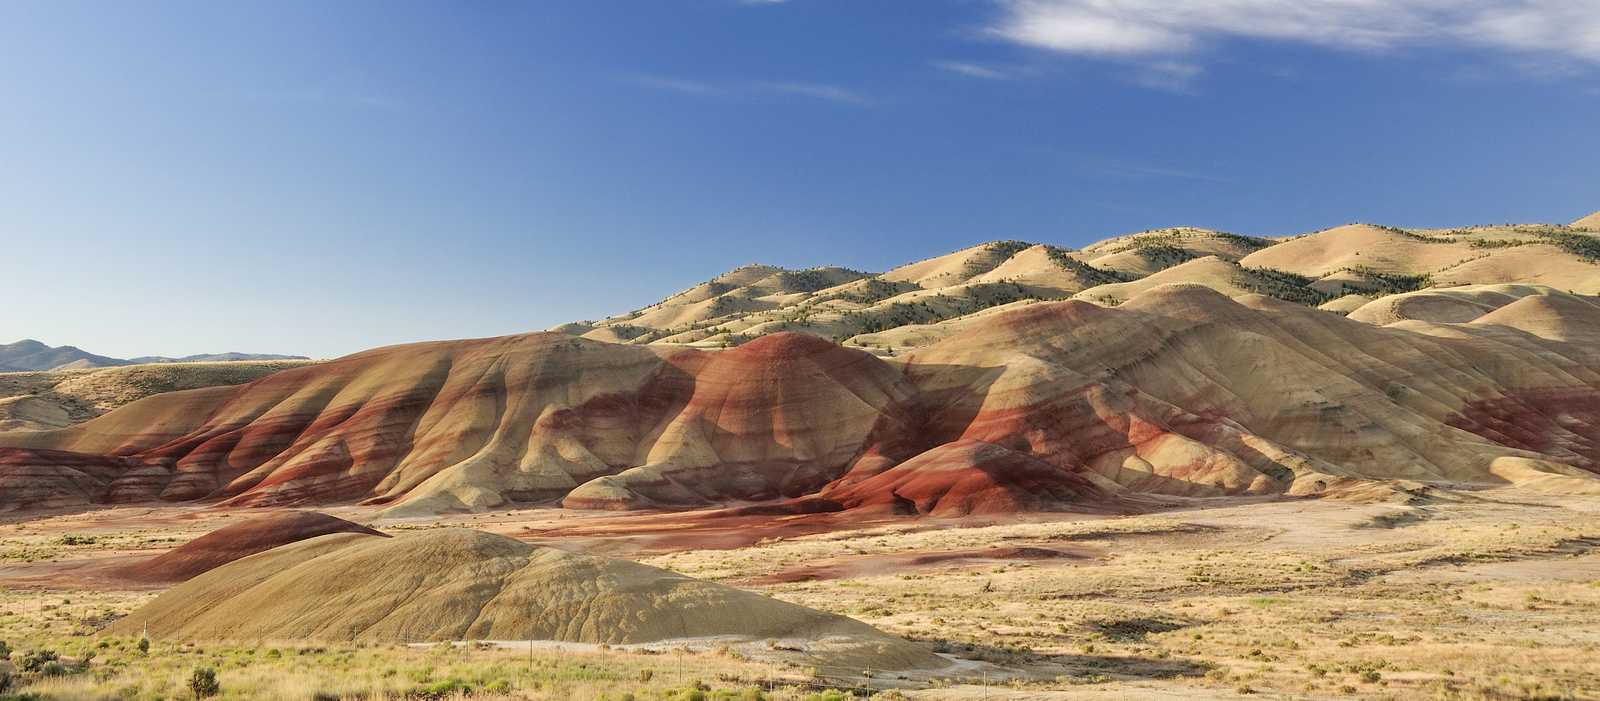 Die Painted Hills im John Day Fossil Beds National Monument in Oregon